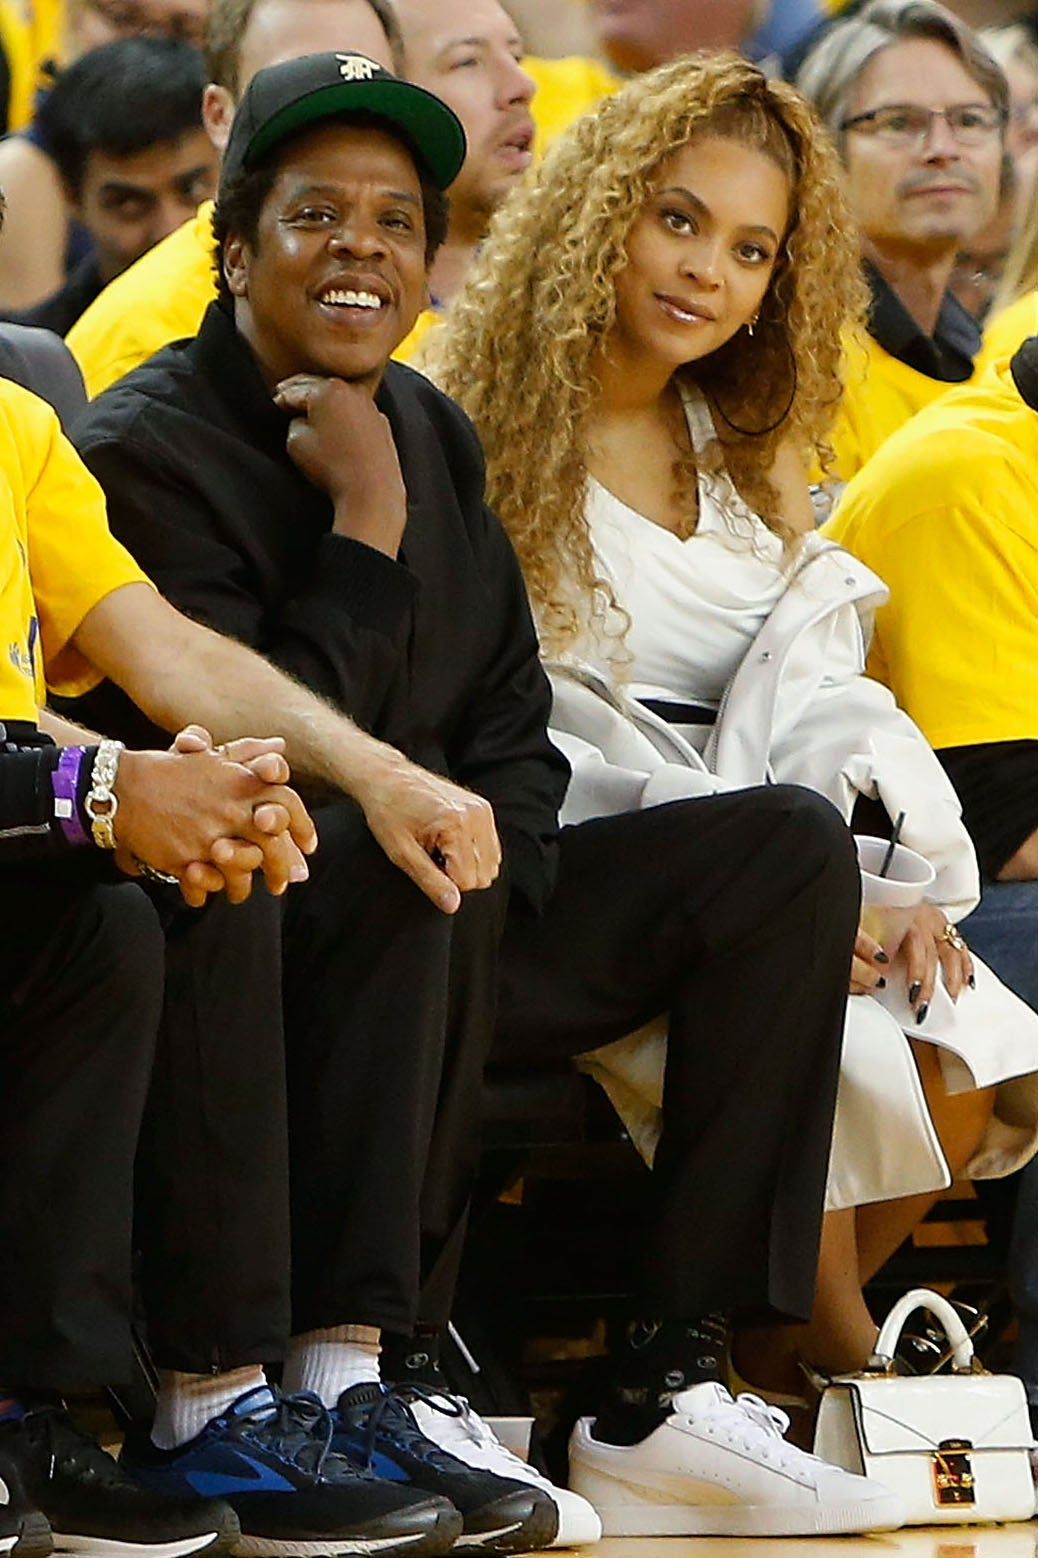 Beyoncé And JAY-Z Had Another Flawless Courtside Date Night at the NBA Playoffs